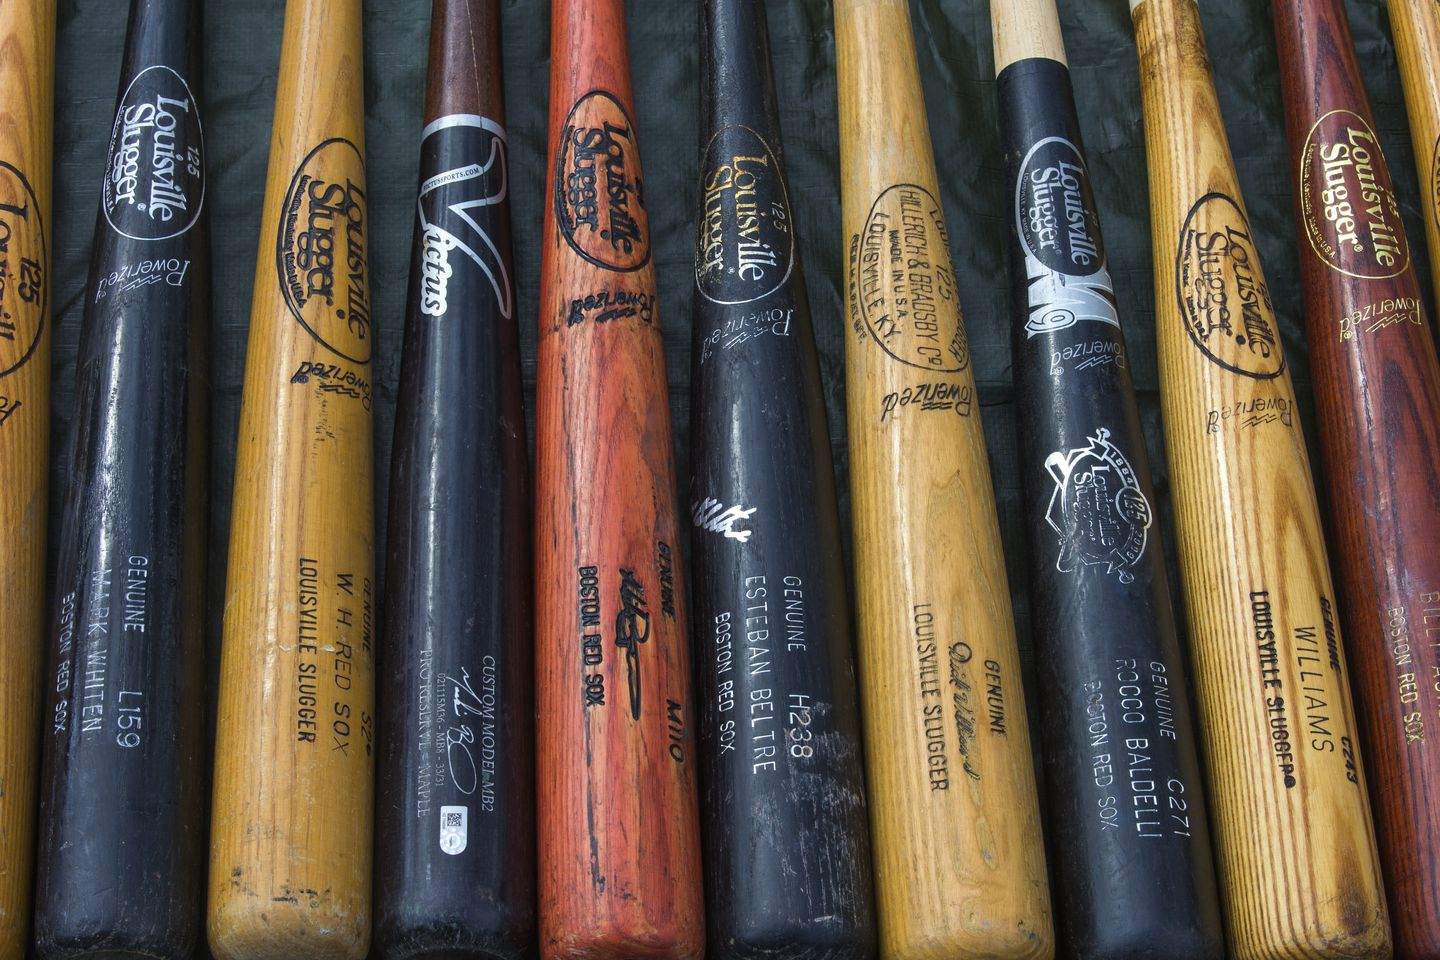 Boujoukos's collection includes bats of all sizes and colors.